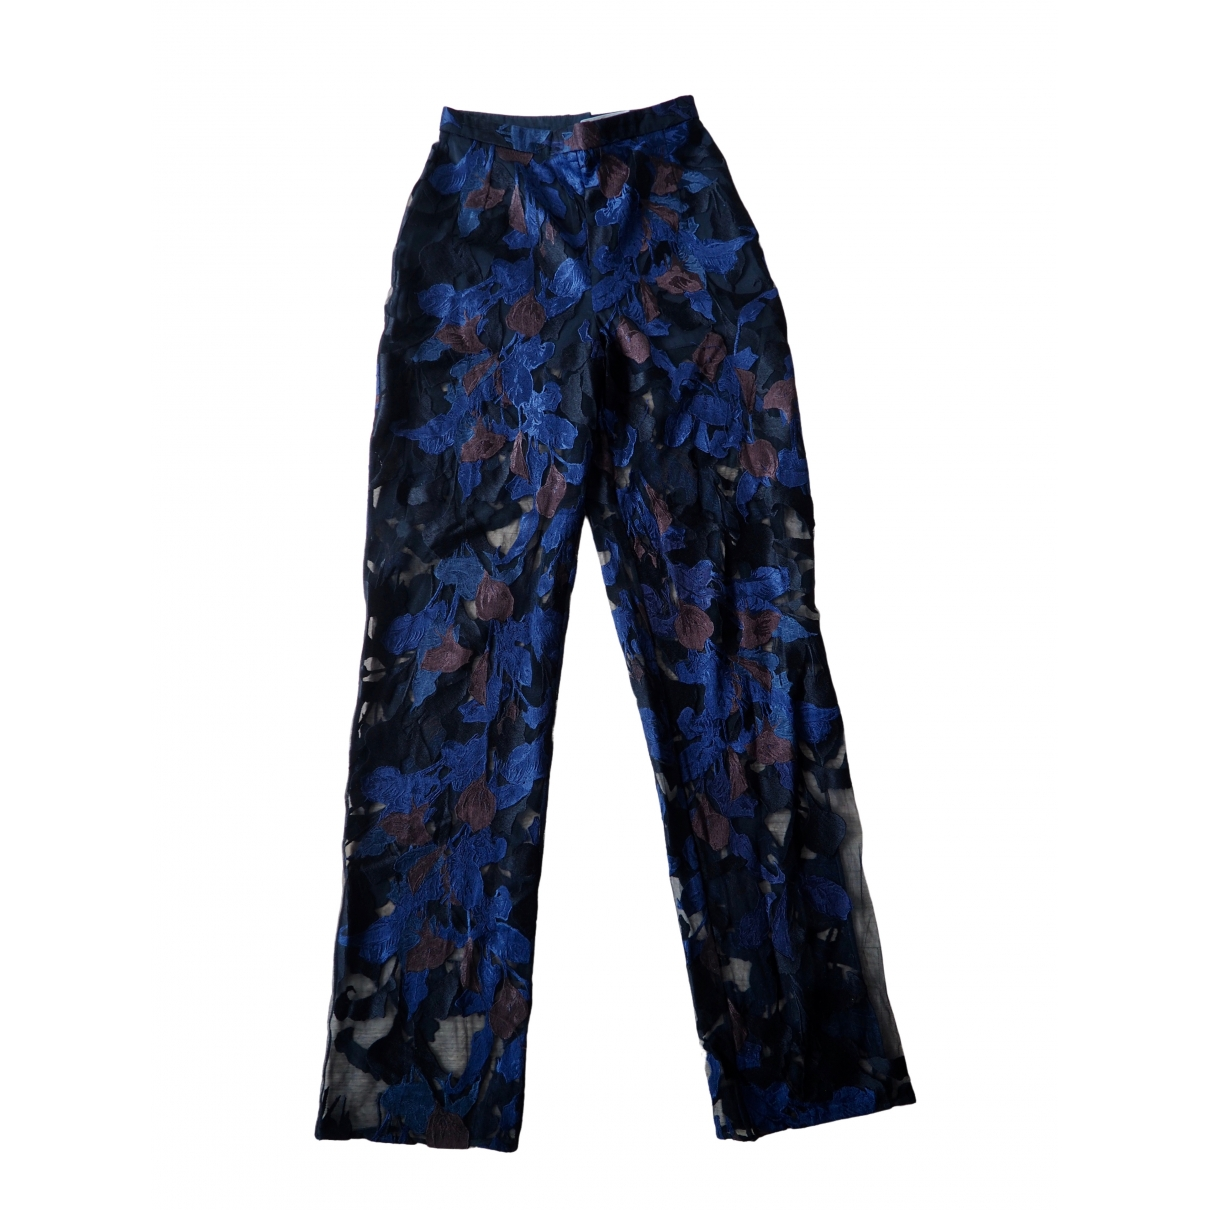 Peter Pilotto \N Multicolour Trousers for Women 8 UK